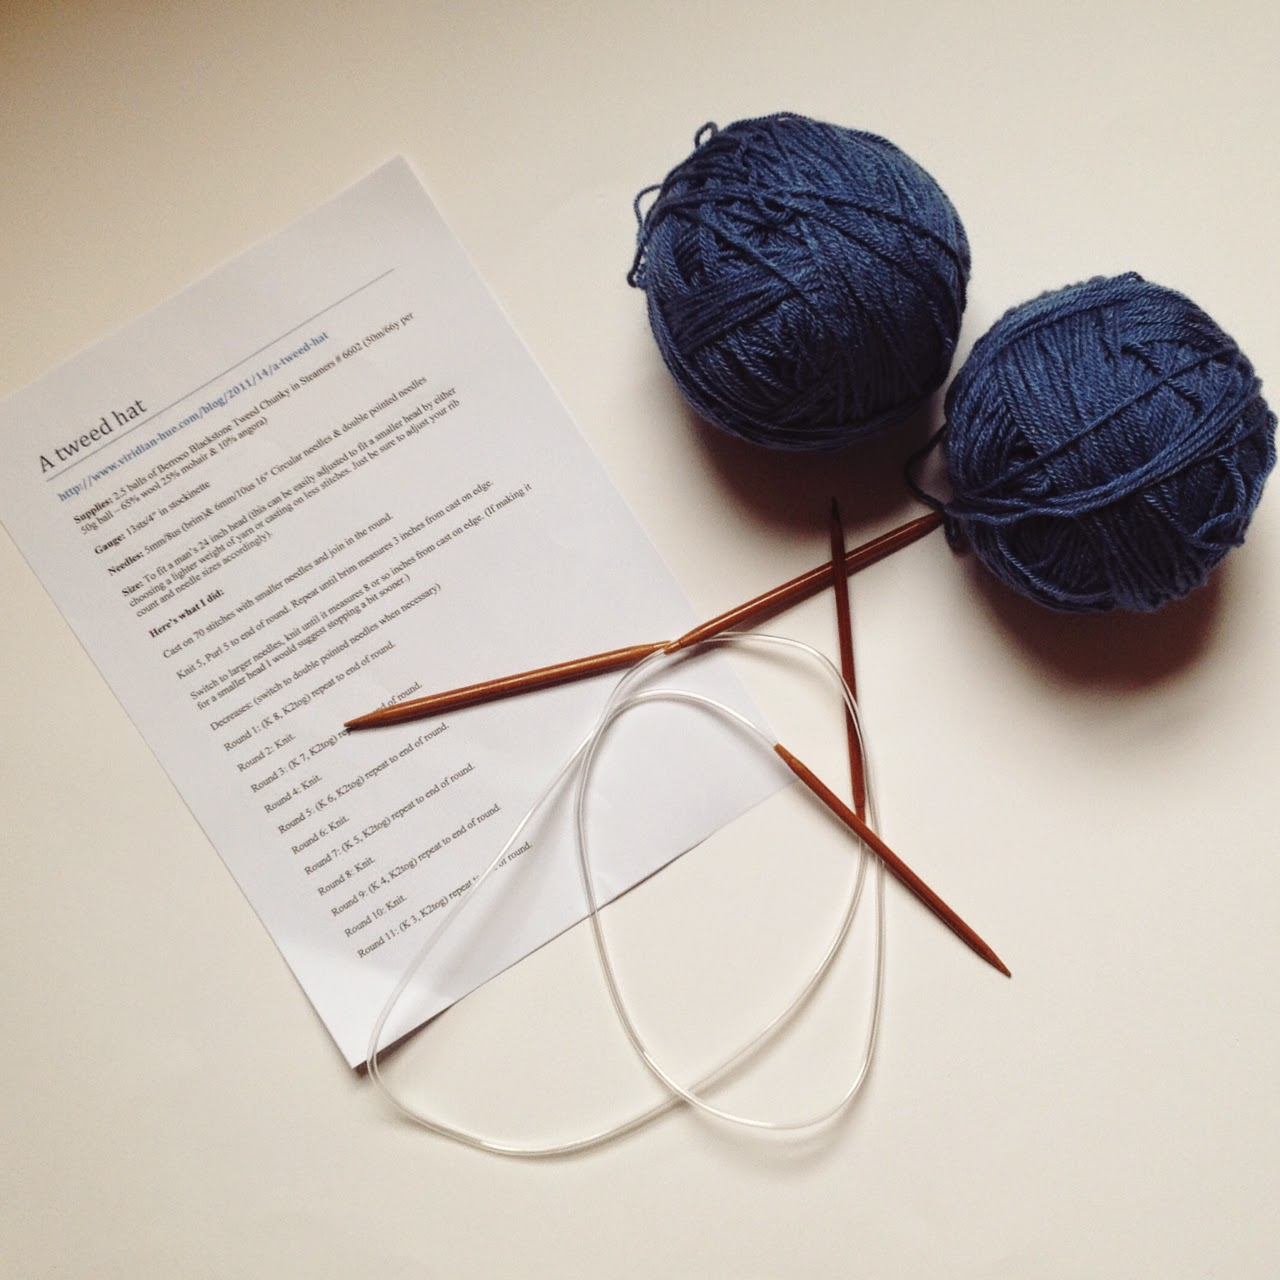 Knit With Round Needles : The geeky knitter knitting with circular needles